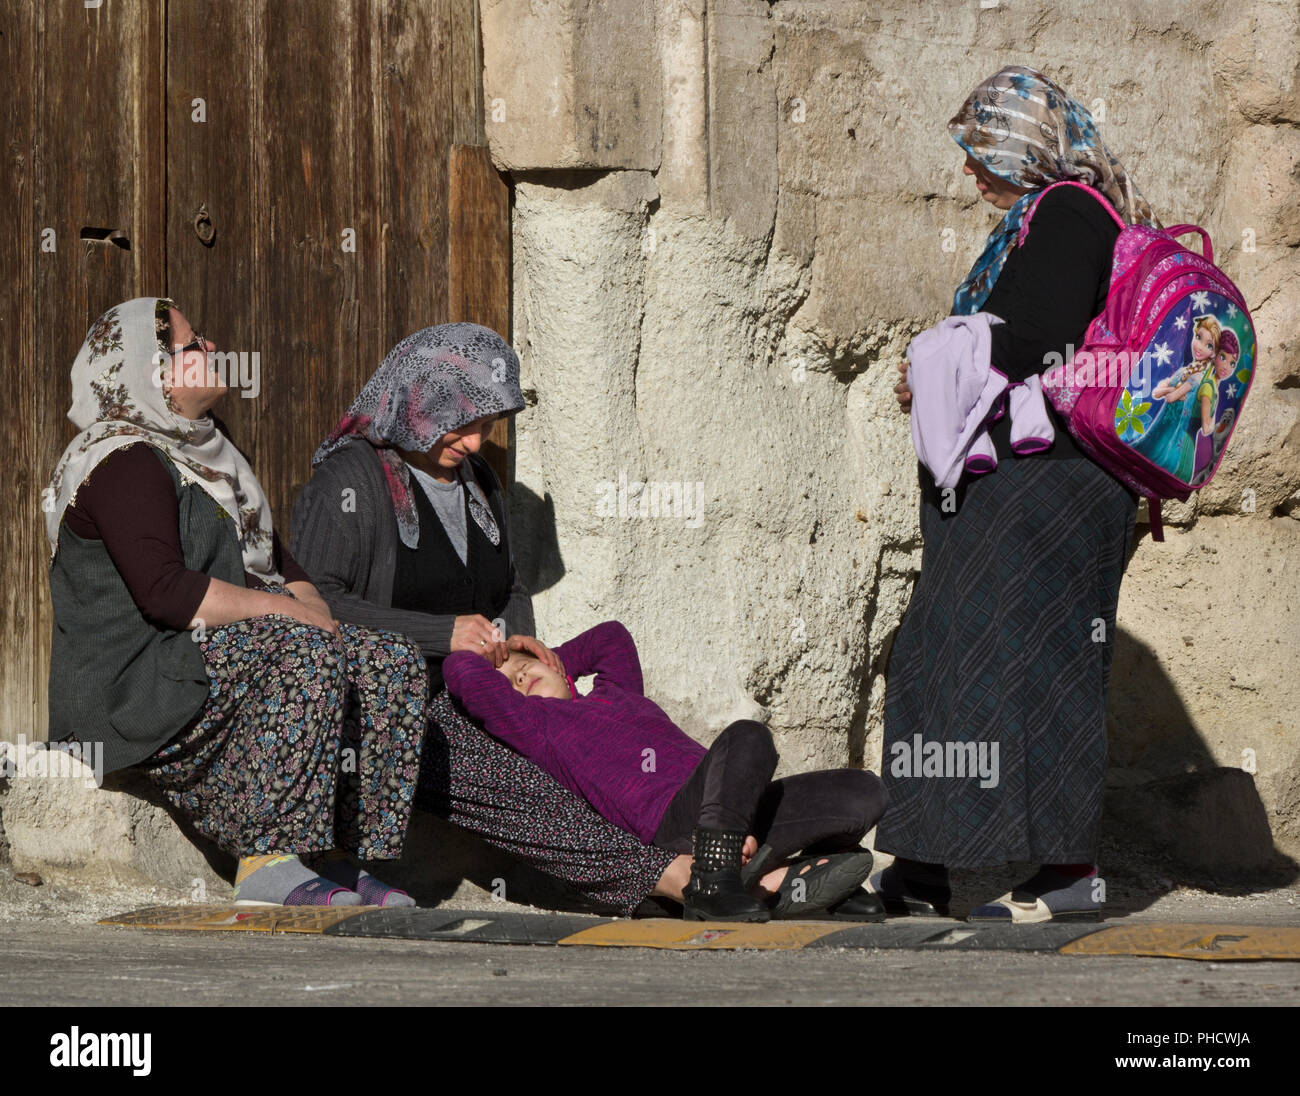 Three Muslim women in hijabs and a girl relaxing and talking in the morning sun in Goreme, Turkey - Stock Image